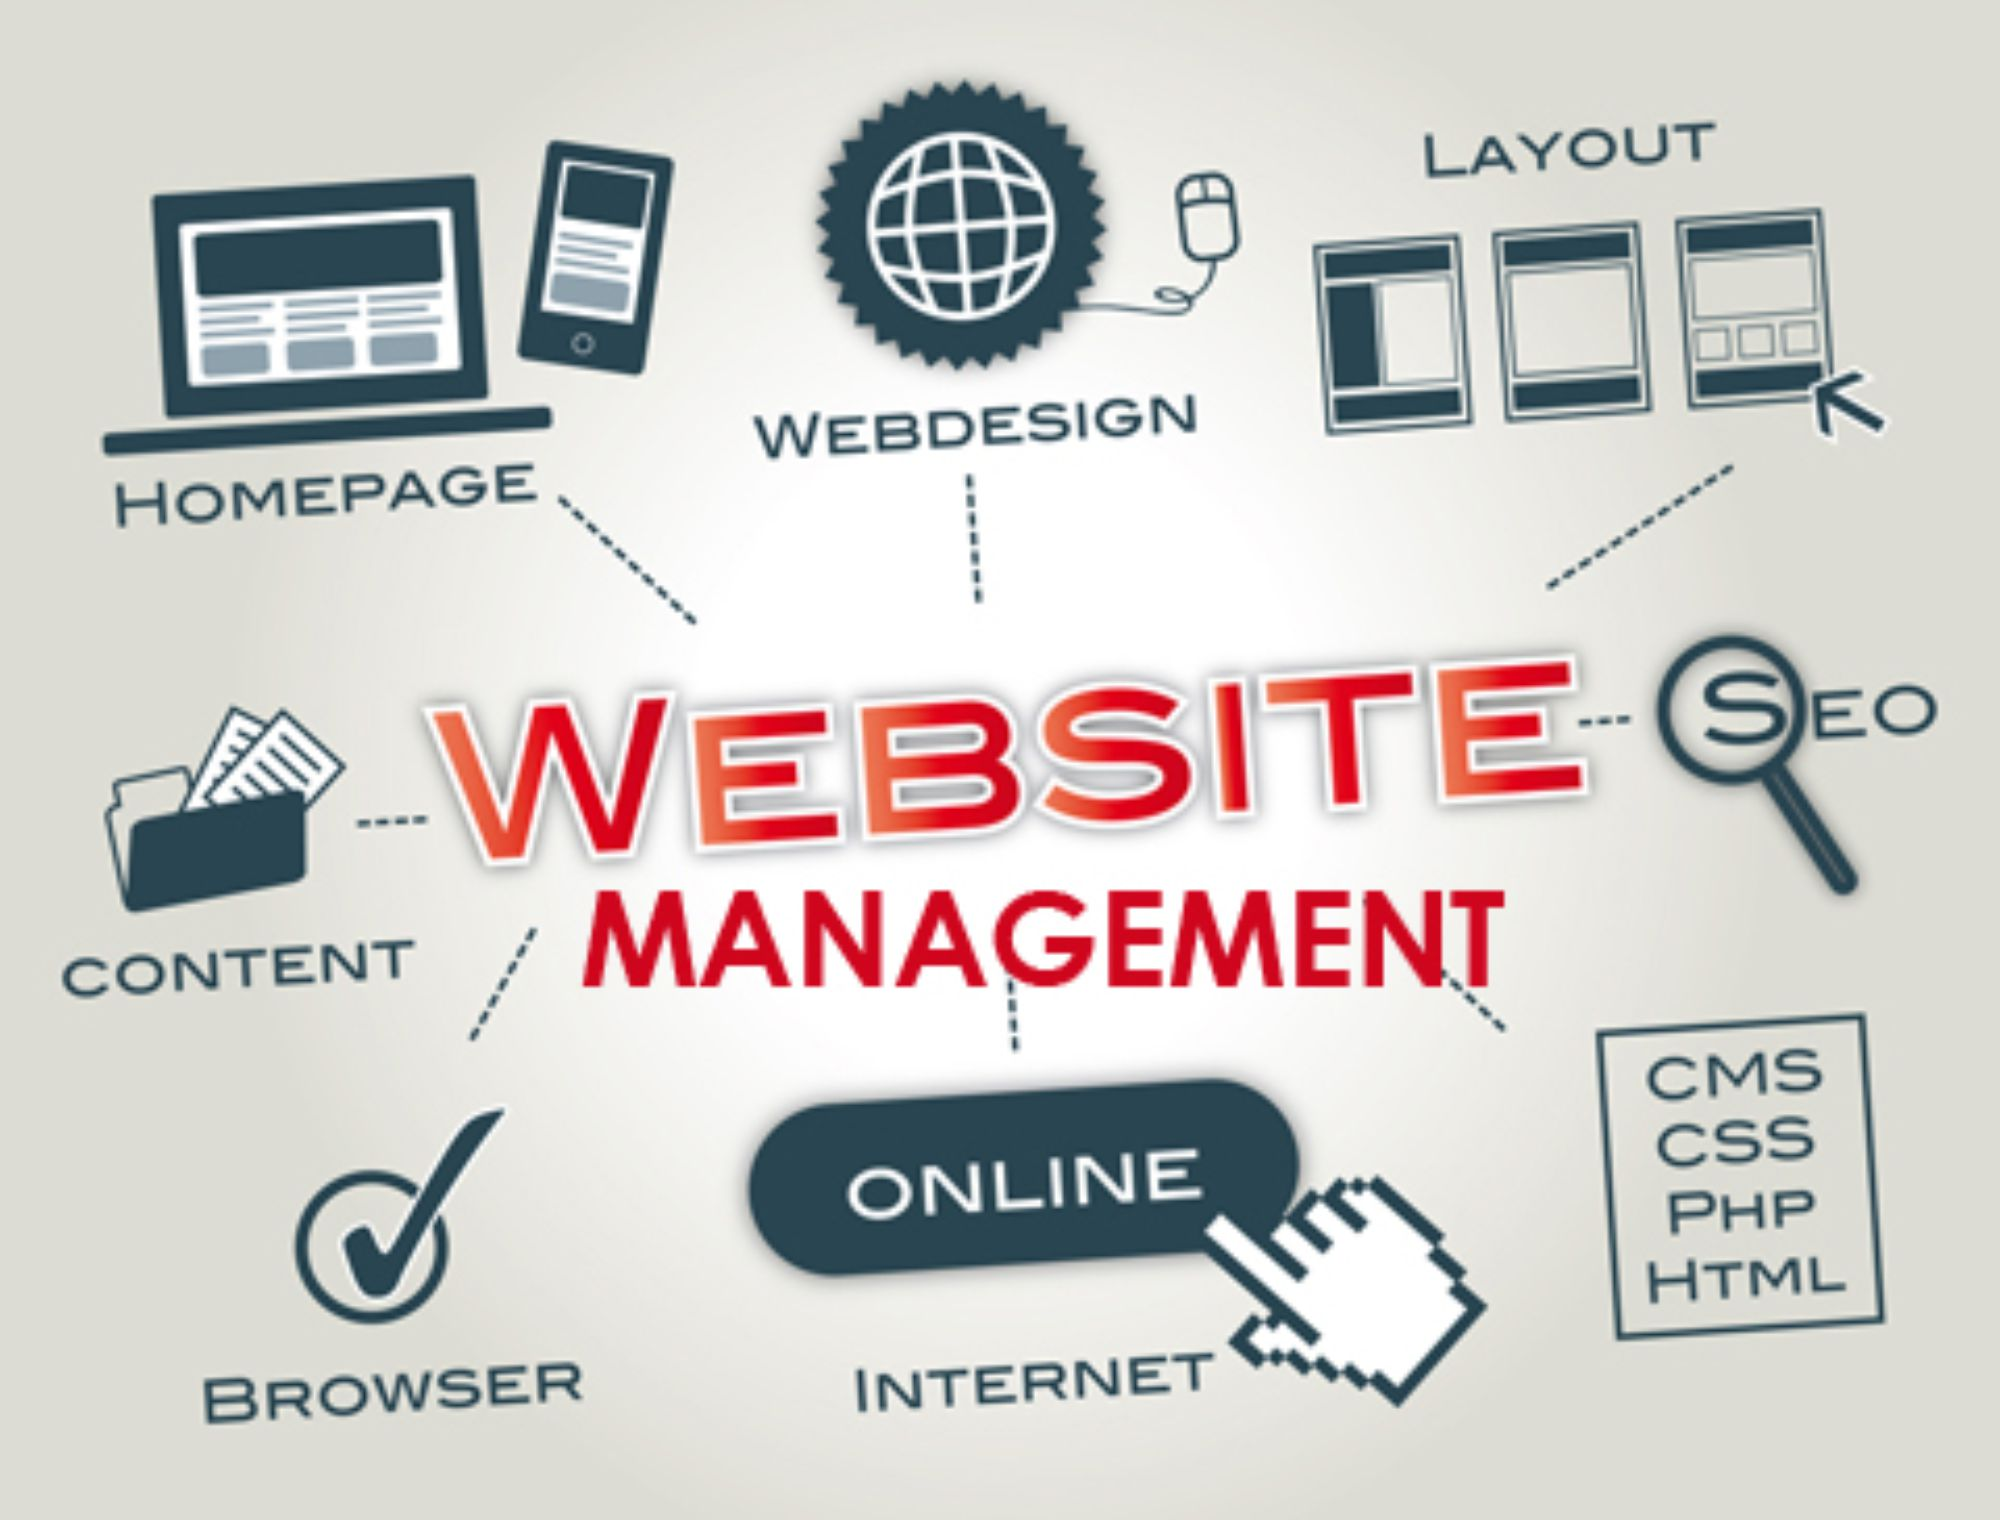 Our website management service aims to make website ownership easy and helps ensure your website performs at its best at all times.